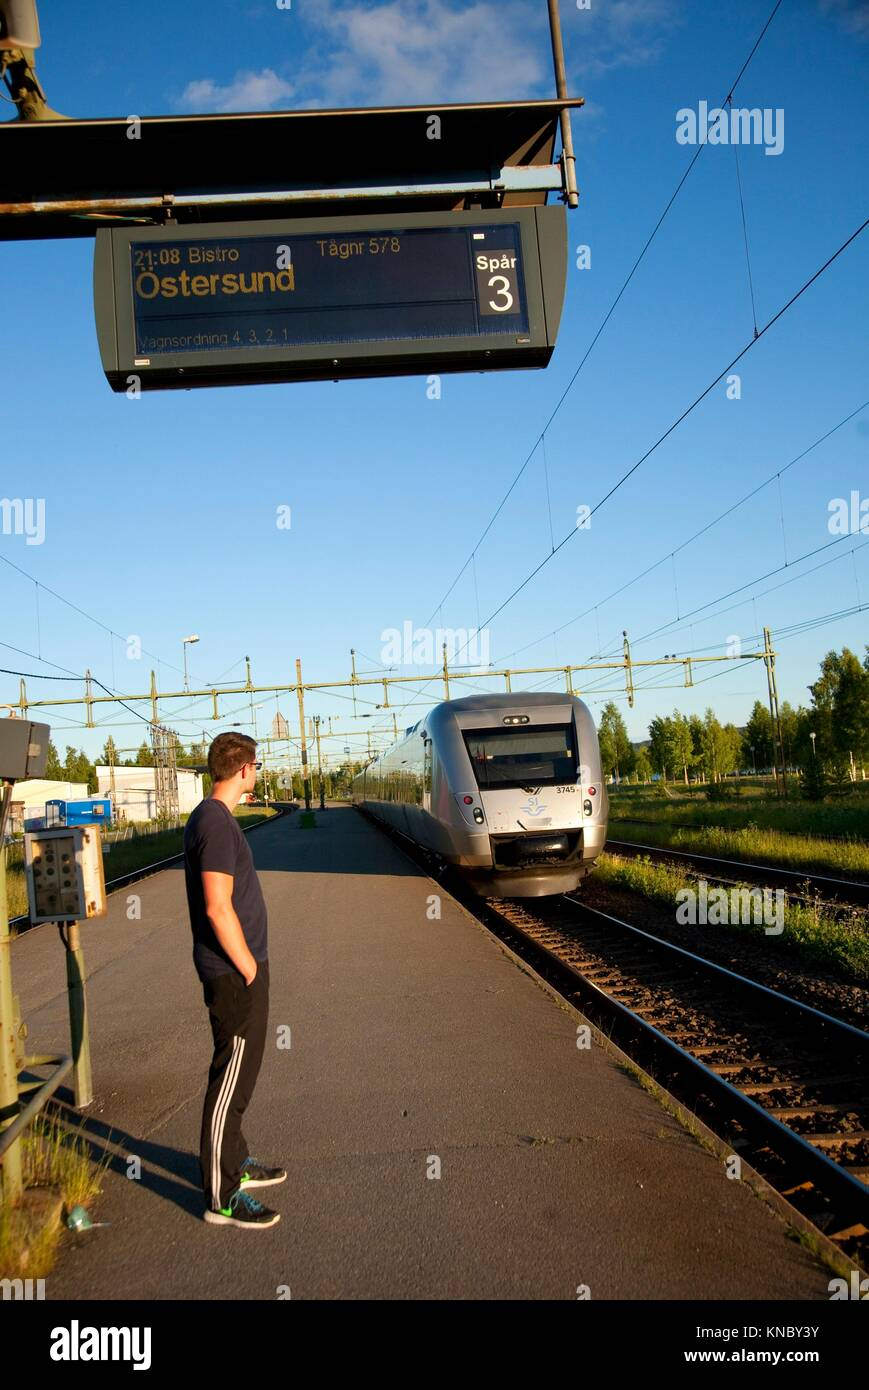 Man waiting for the train in Bräcke, countryside of northern Sweden. - Stock Image